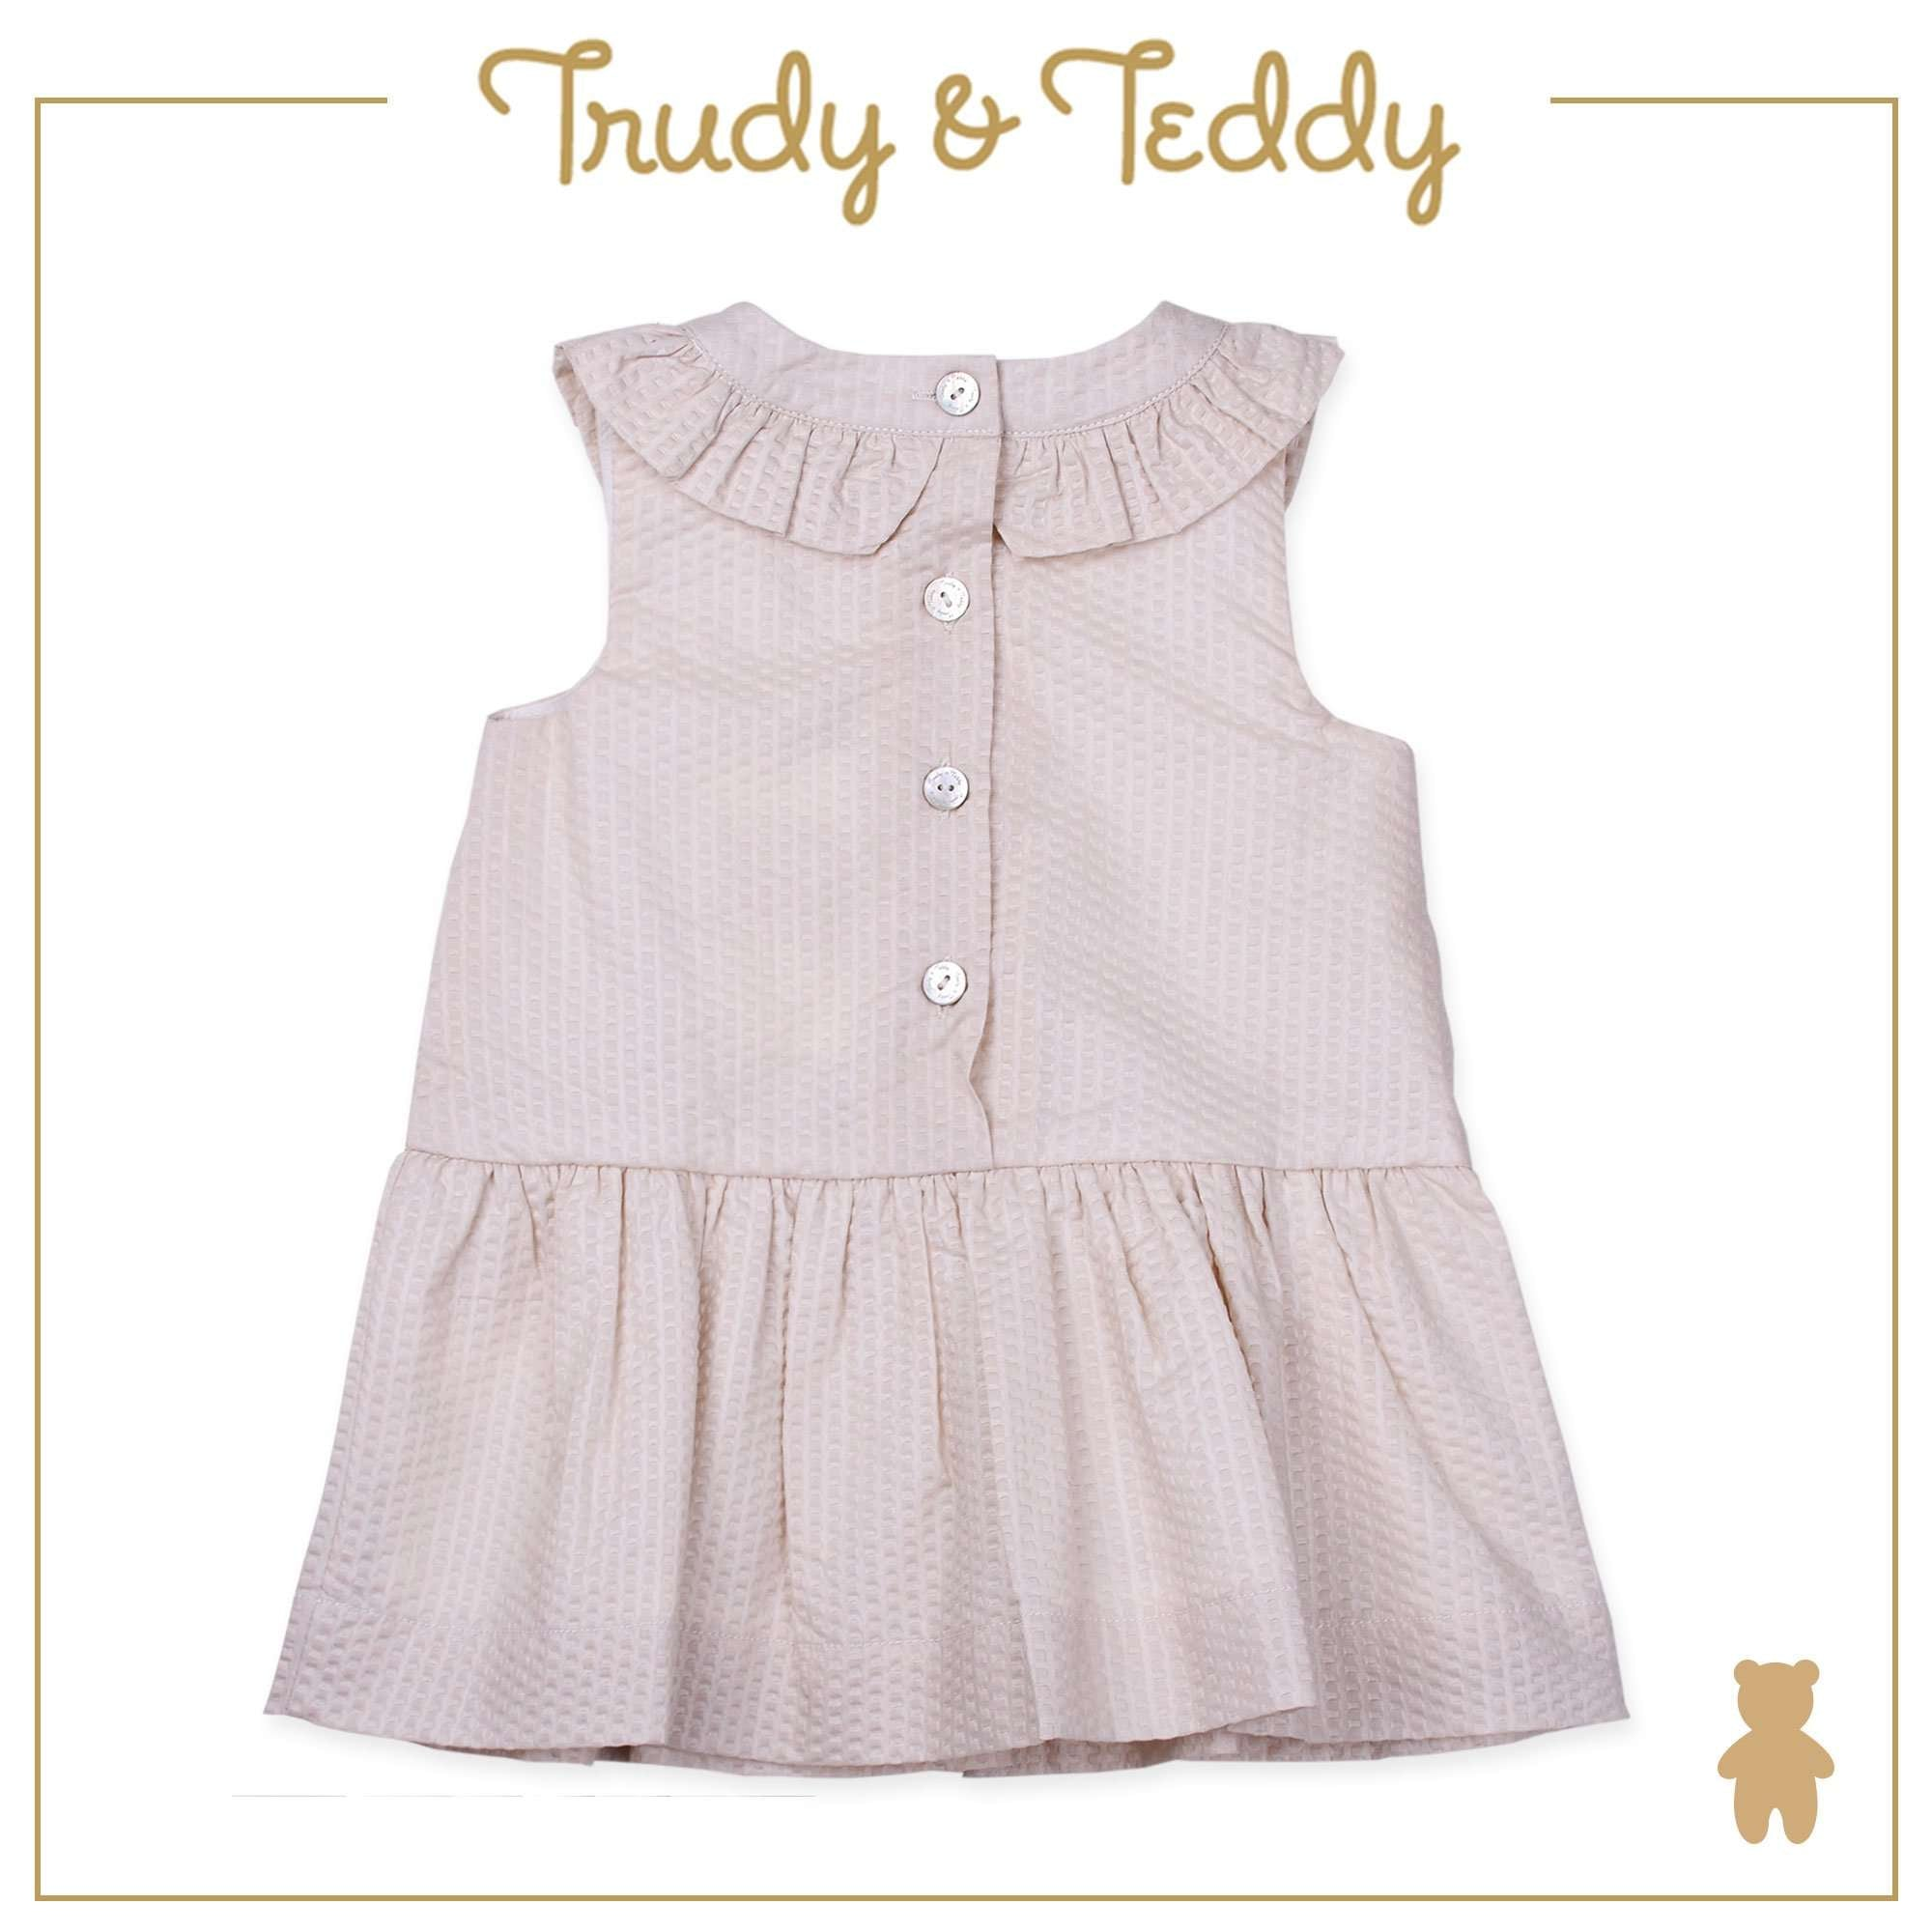 Trudy & Teddy Baby Girl Sleeveless Dress - Light Khaki T924002-3101-K1 : Buy Trudy & Teddy online at CMG.MY